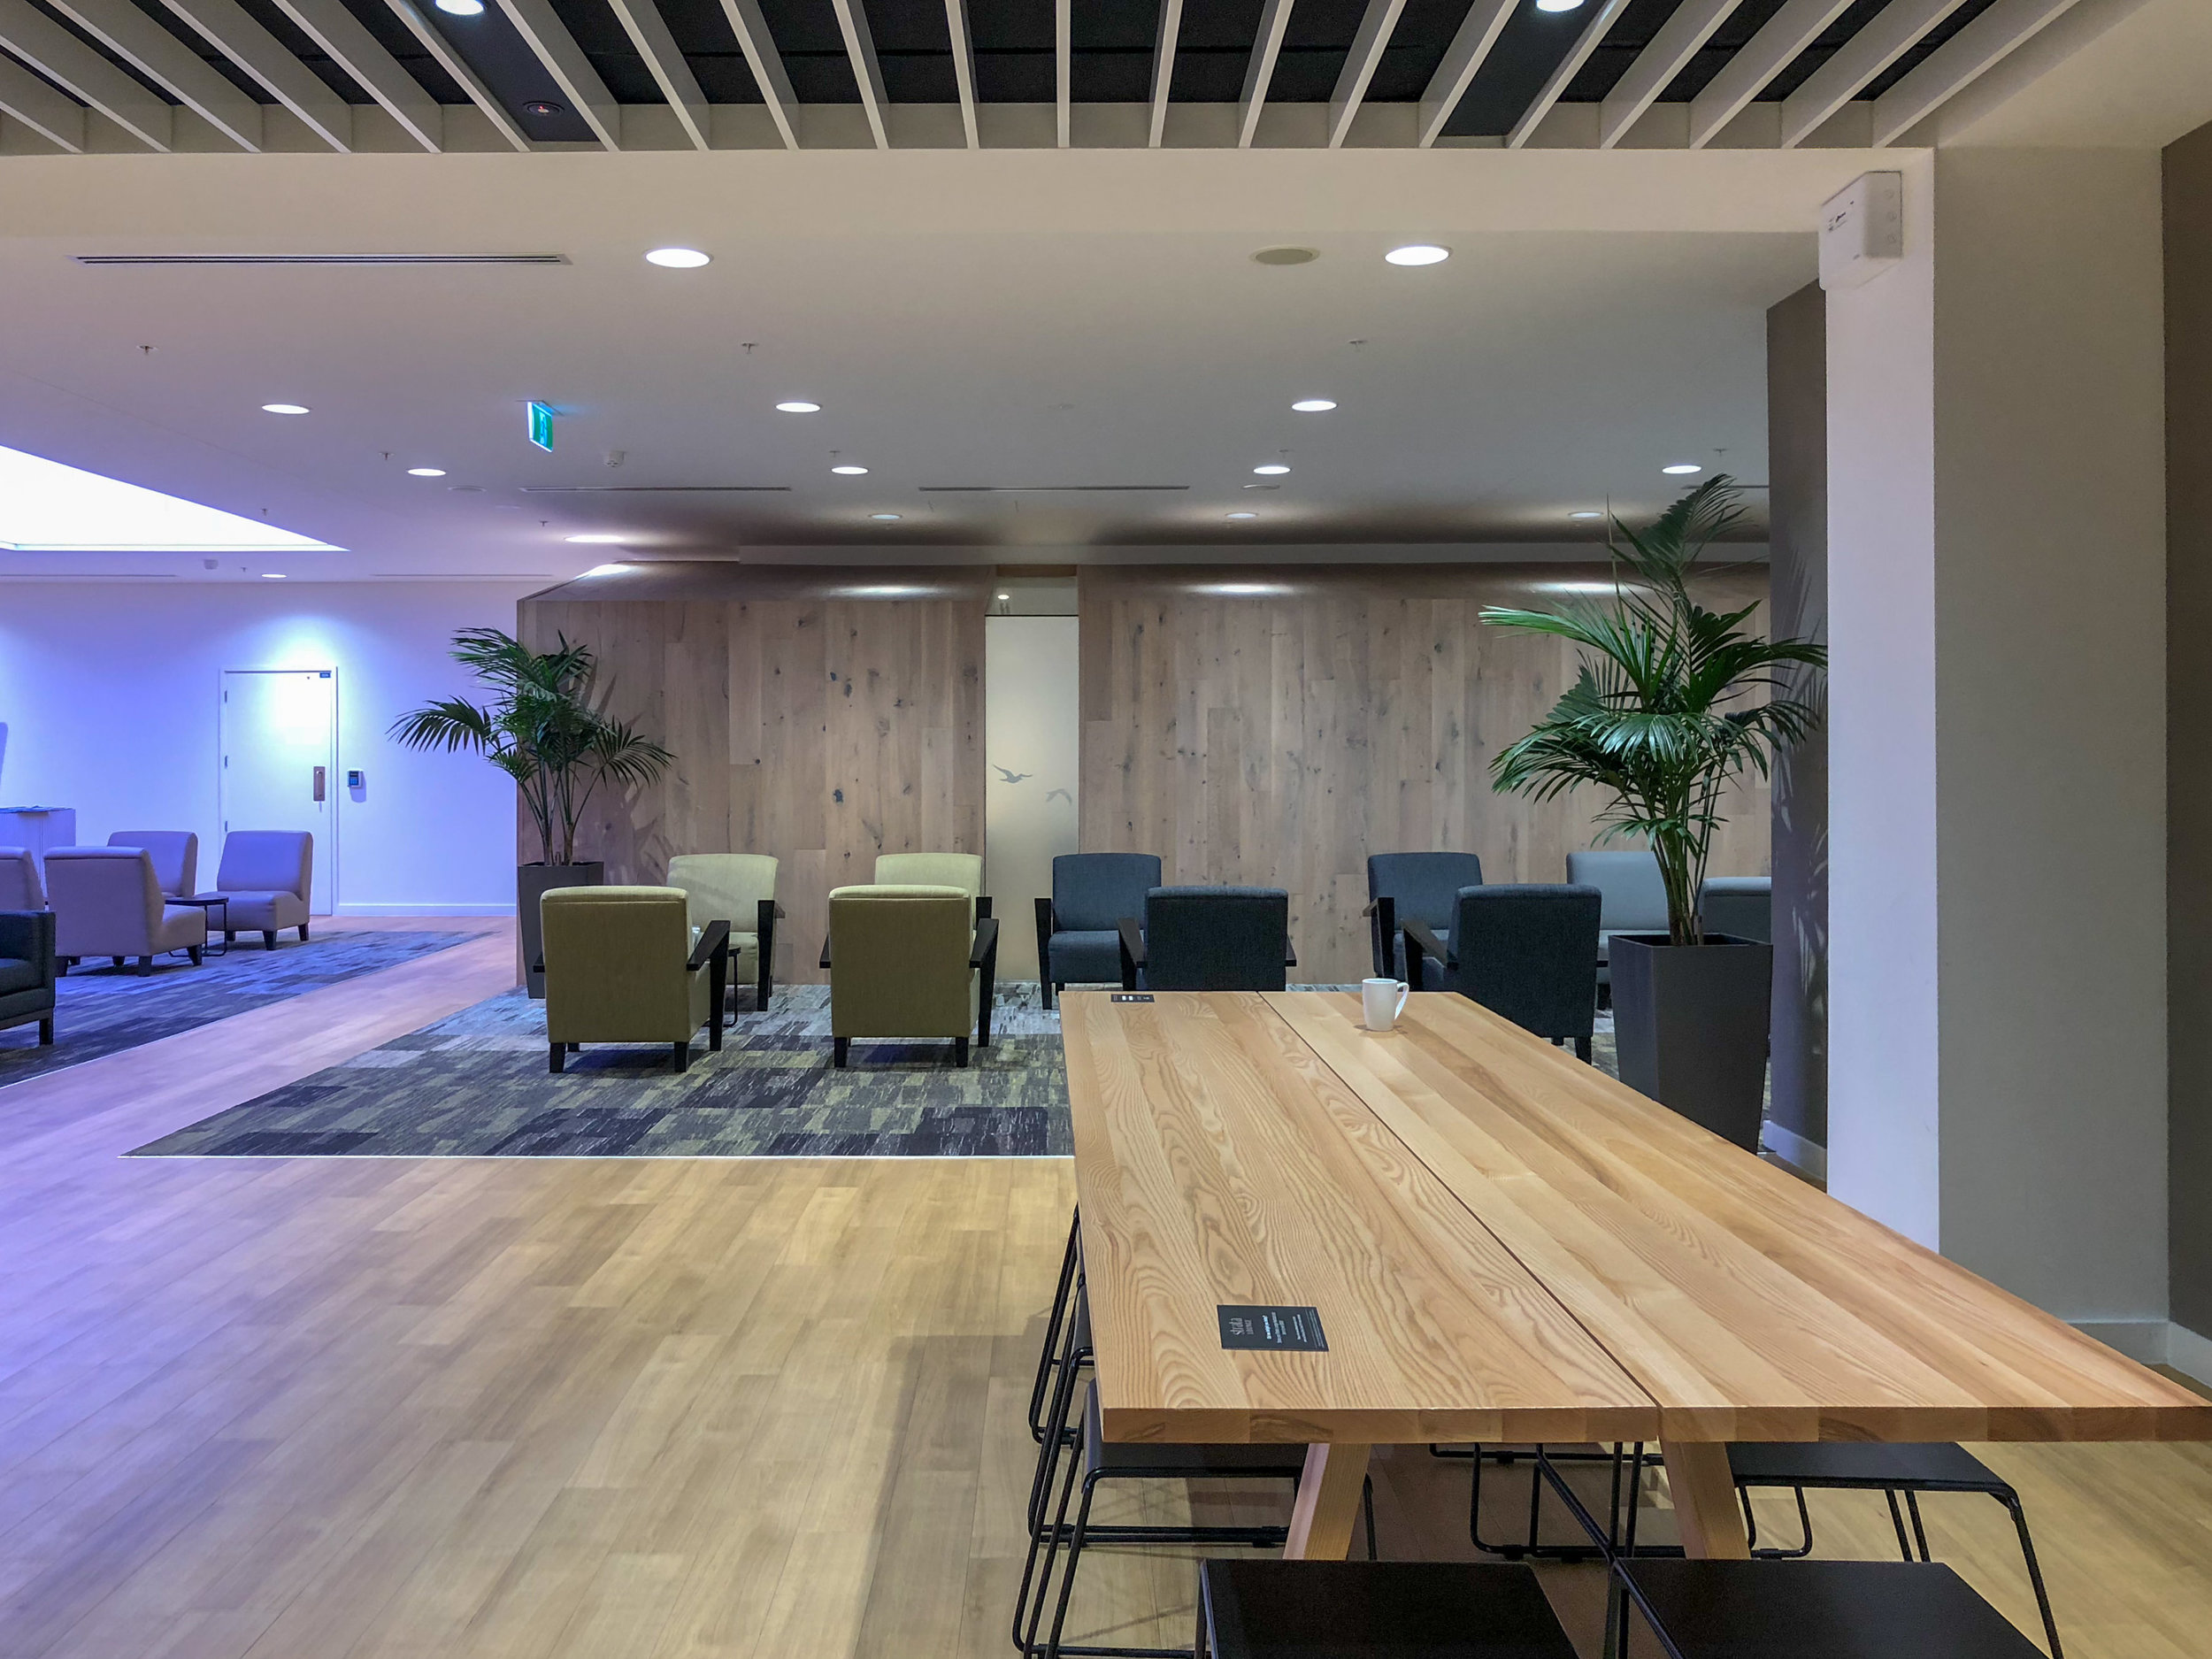 Communal Seating Area  Strata Lounge - Auckland Airport (AKL)